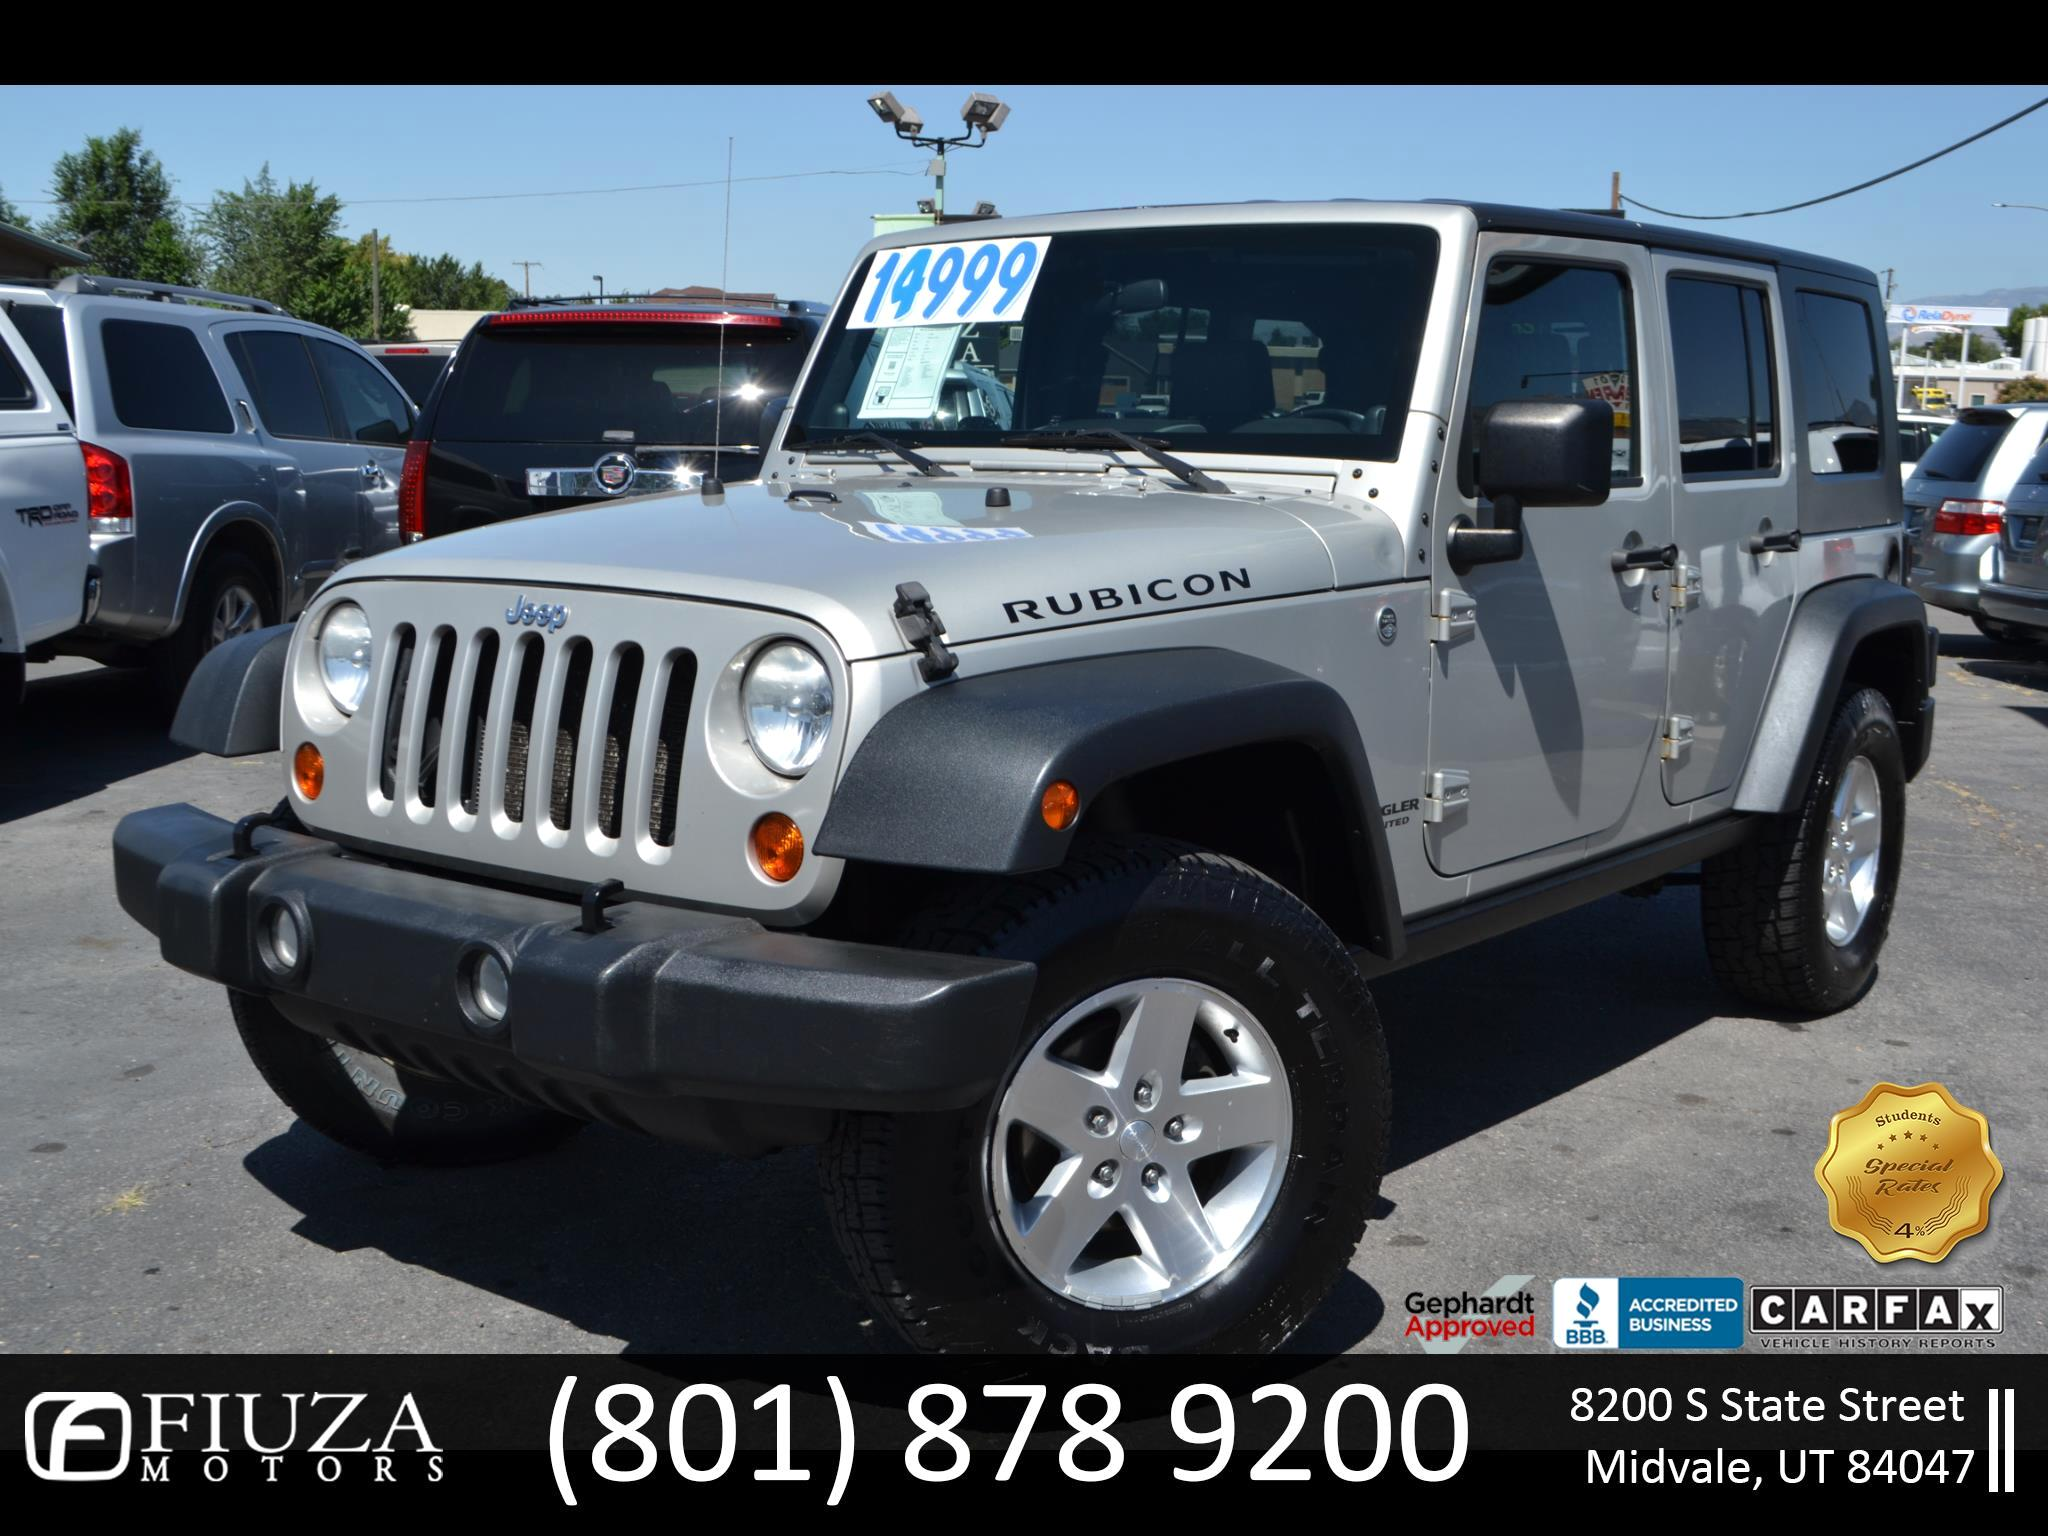 2007 Jeep Wrangler Unlimited Rubicon 4WD